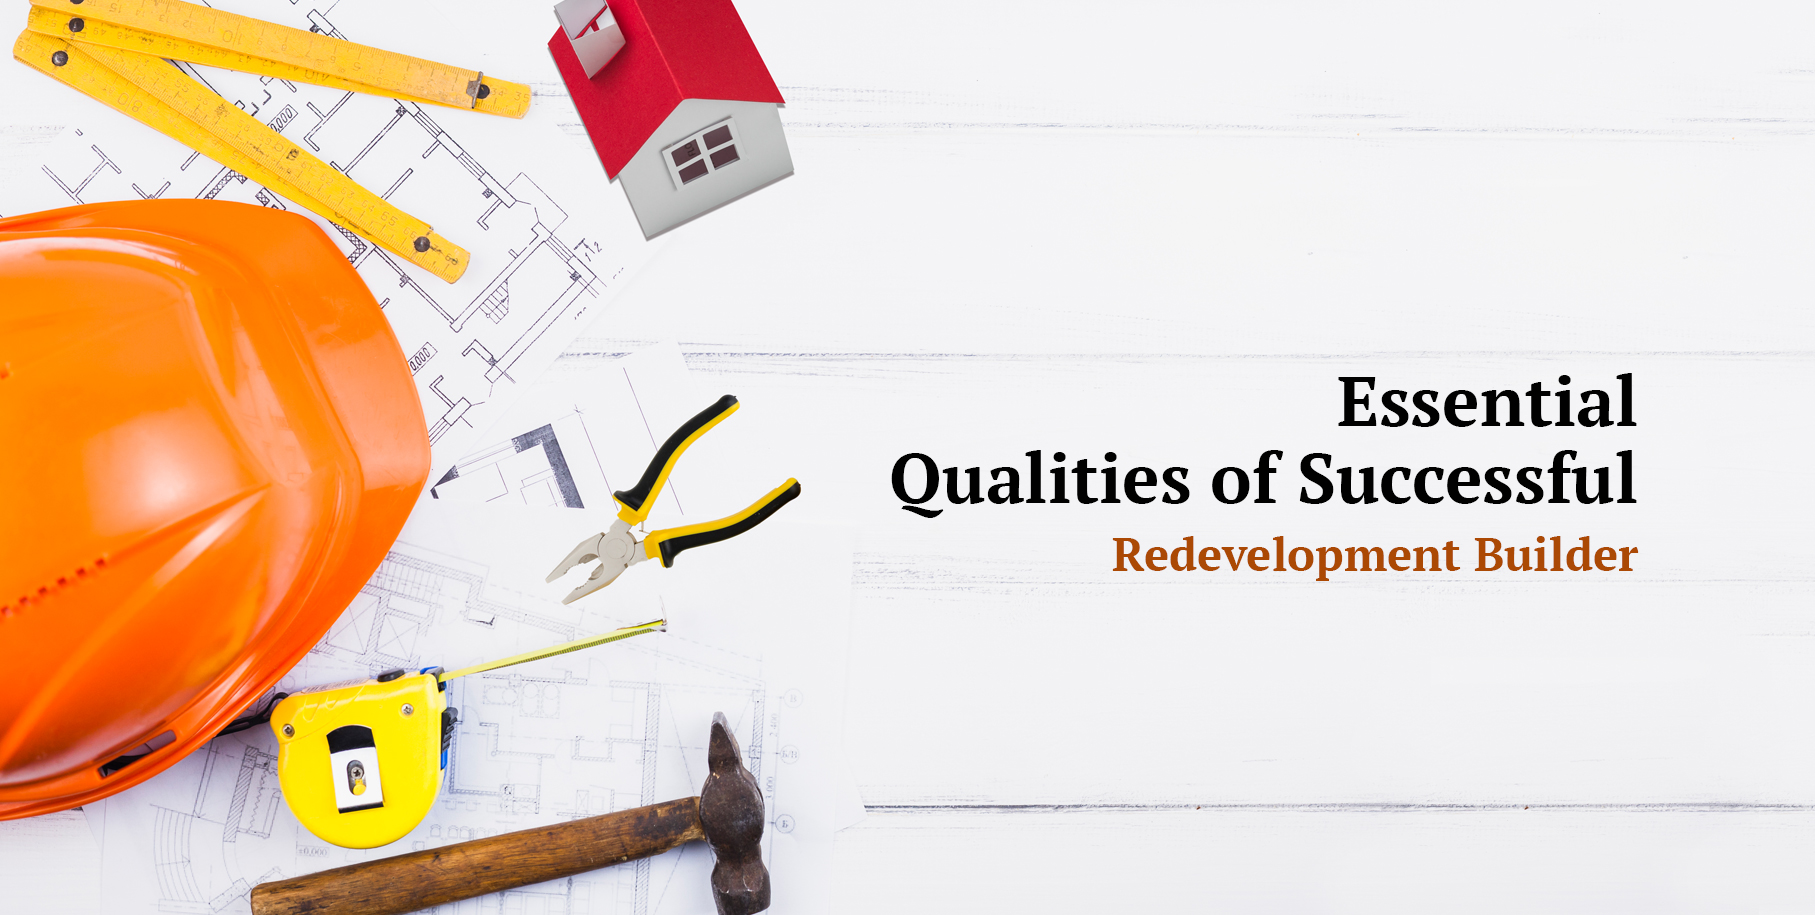 Essential Qualities of Successful Redevelopment Builder